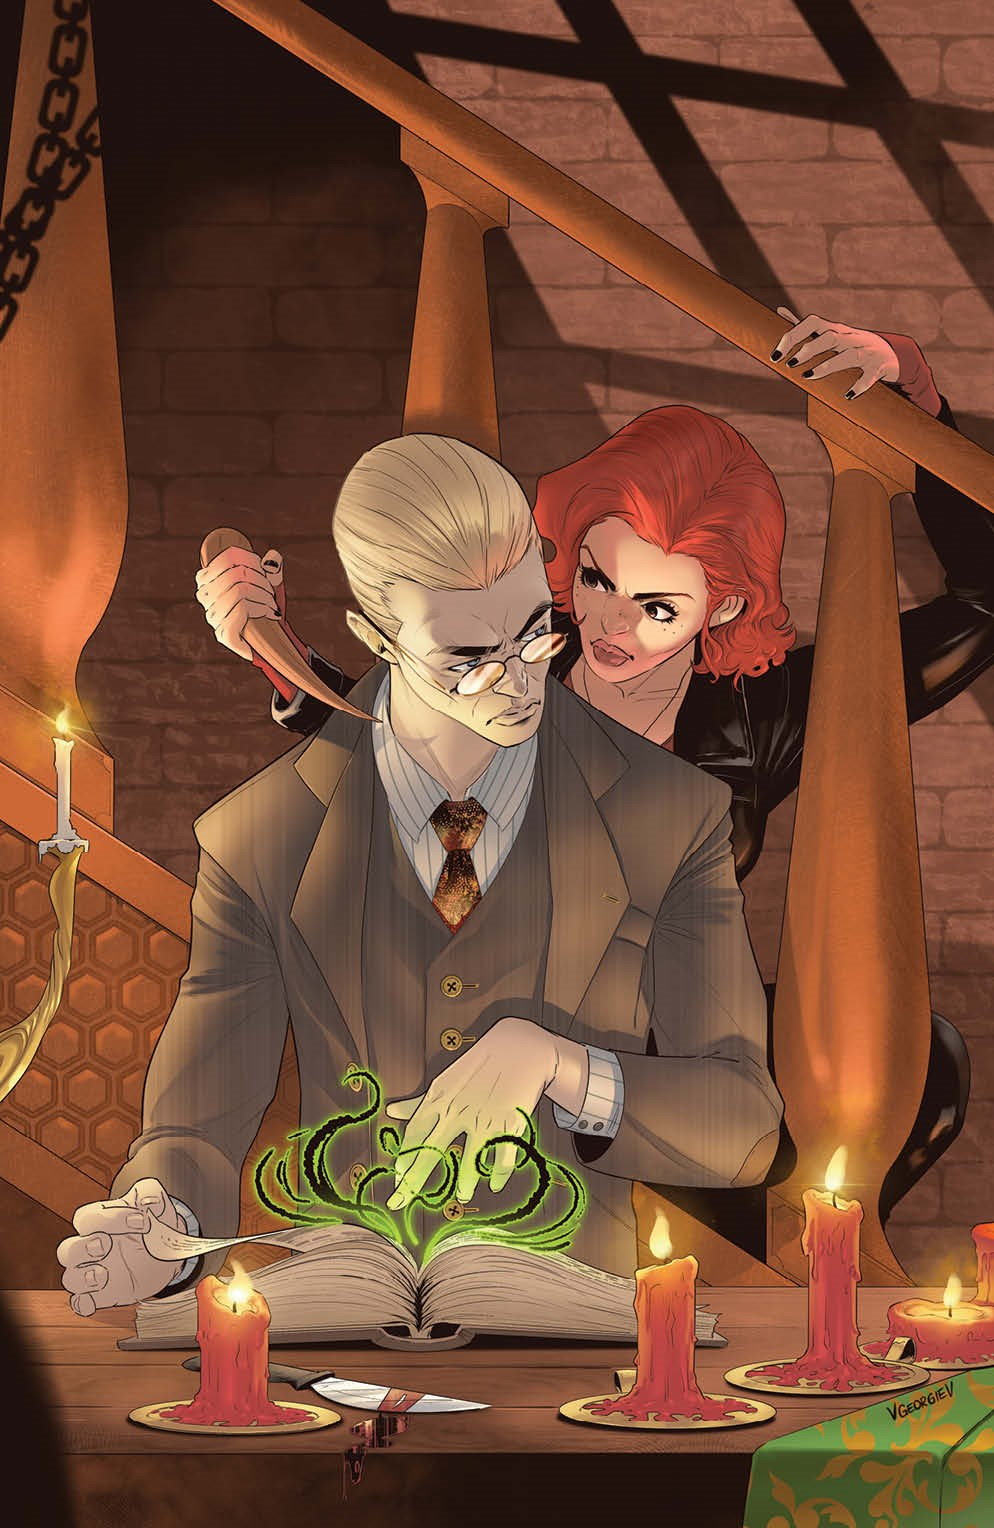 Buffy_028_Cover_F_Variant_Undressed ComicList Previews: BUFFY THE VAMPIRE SLAYER #28